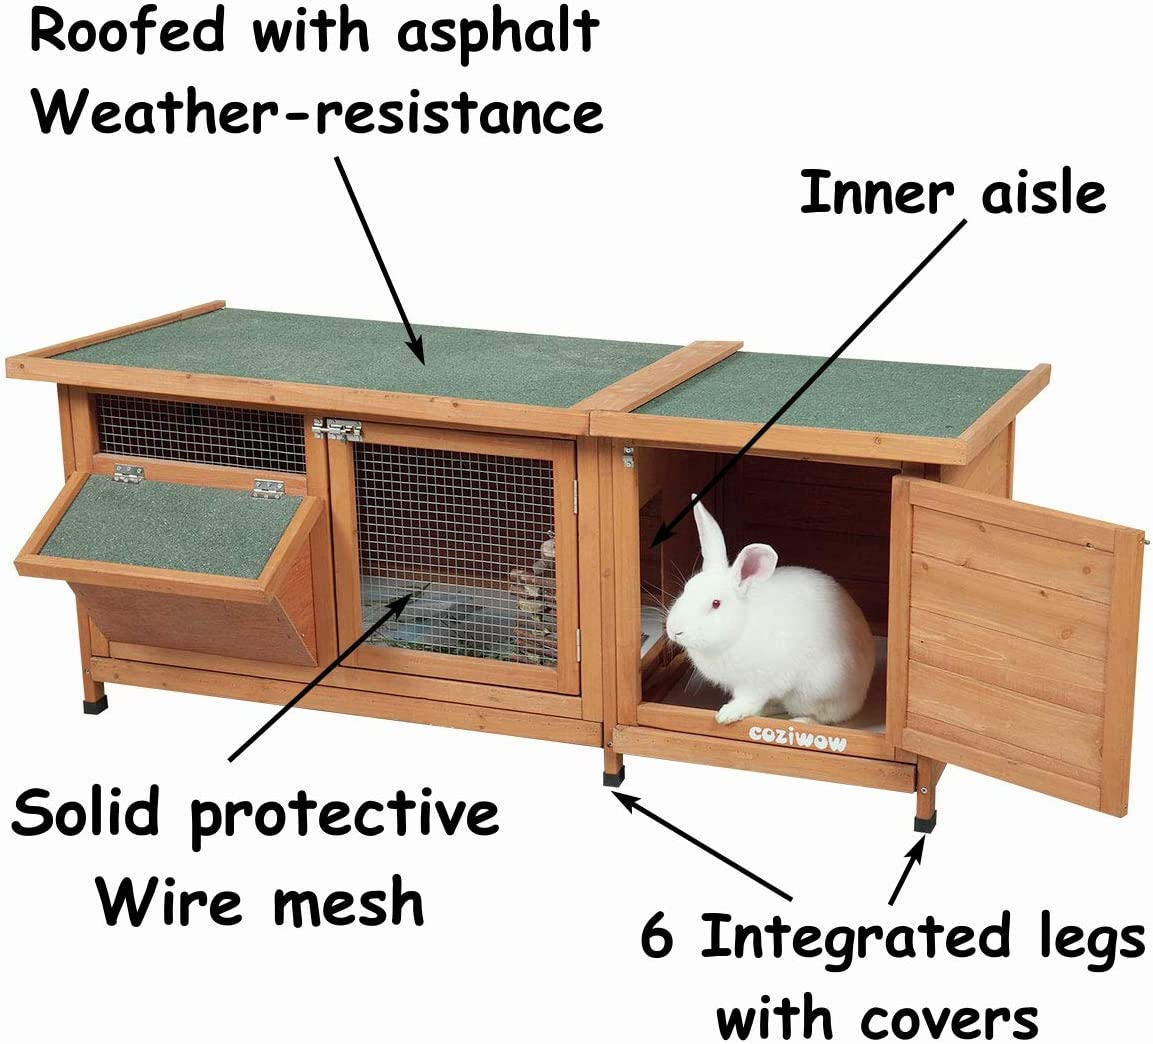 Pets Crate House for Small Animal Dog Cat Squirrel Hamster Hedgehog Guinea Pig Habitat Chicken Coop COZIWOW Indoor Outdoor Wooden Large Rabbit Hutch Bunny Cage